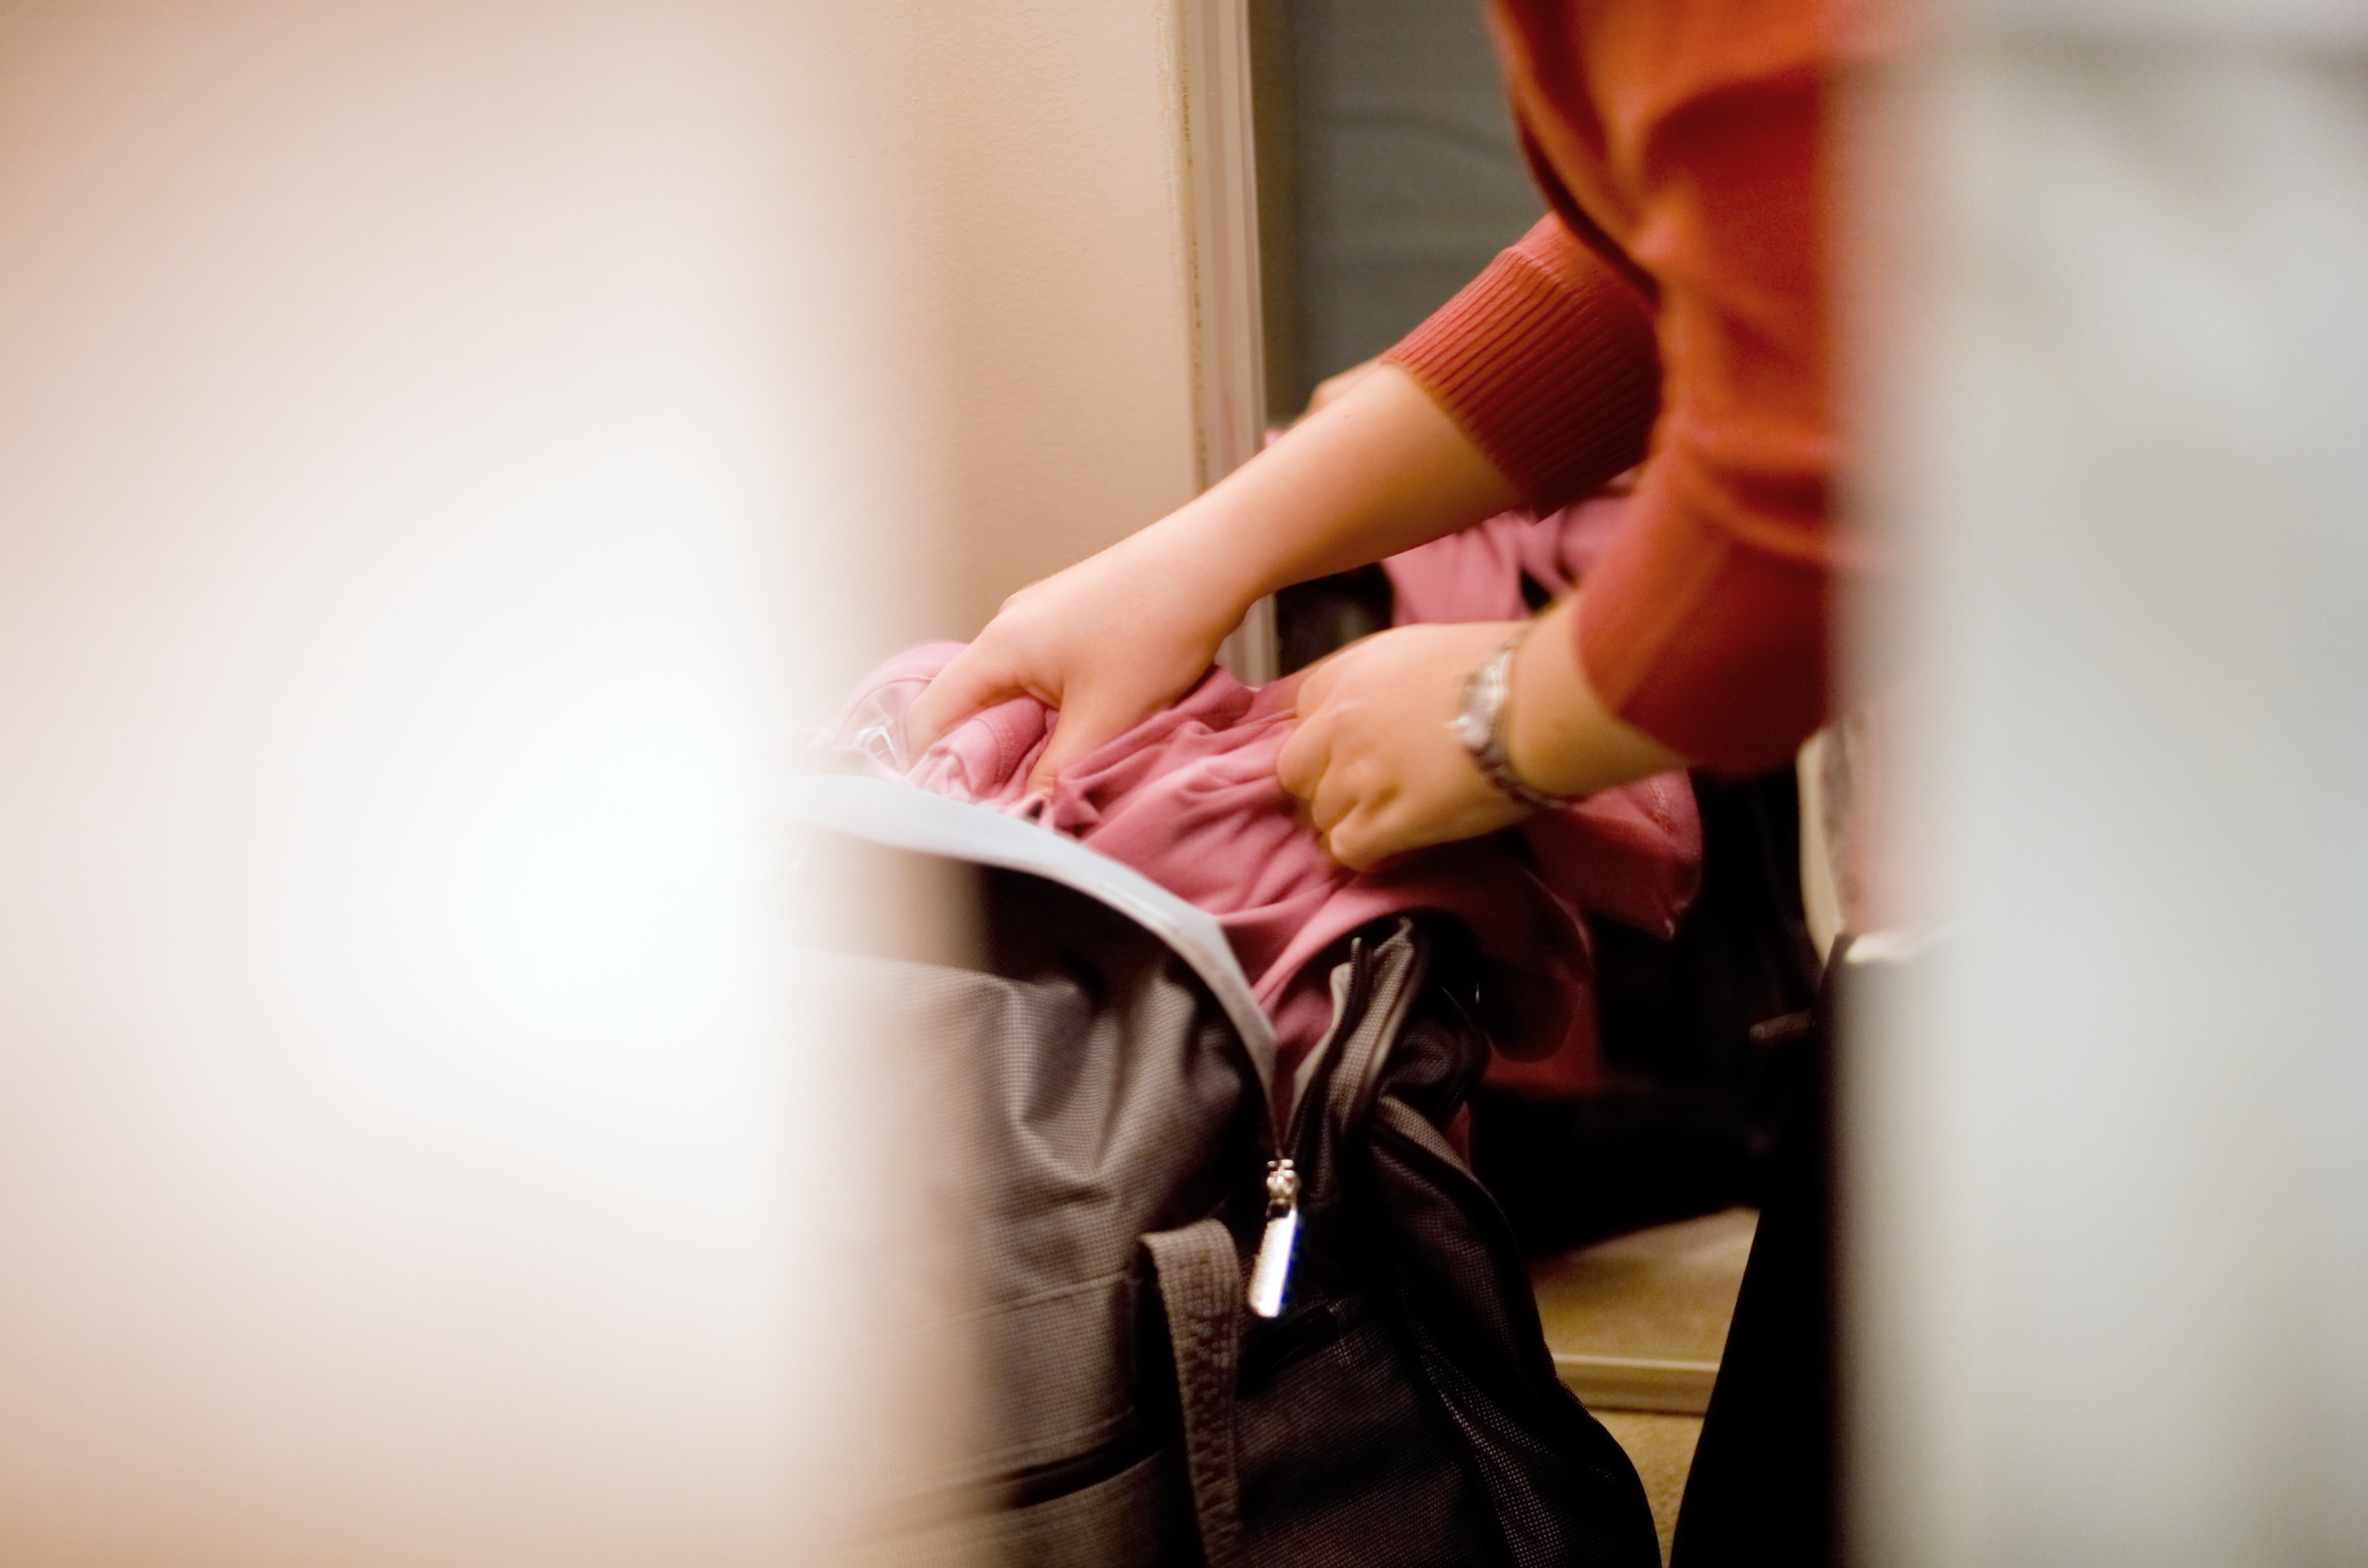 A female in the act of shoplifting or stealing puts an item under her clothes